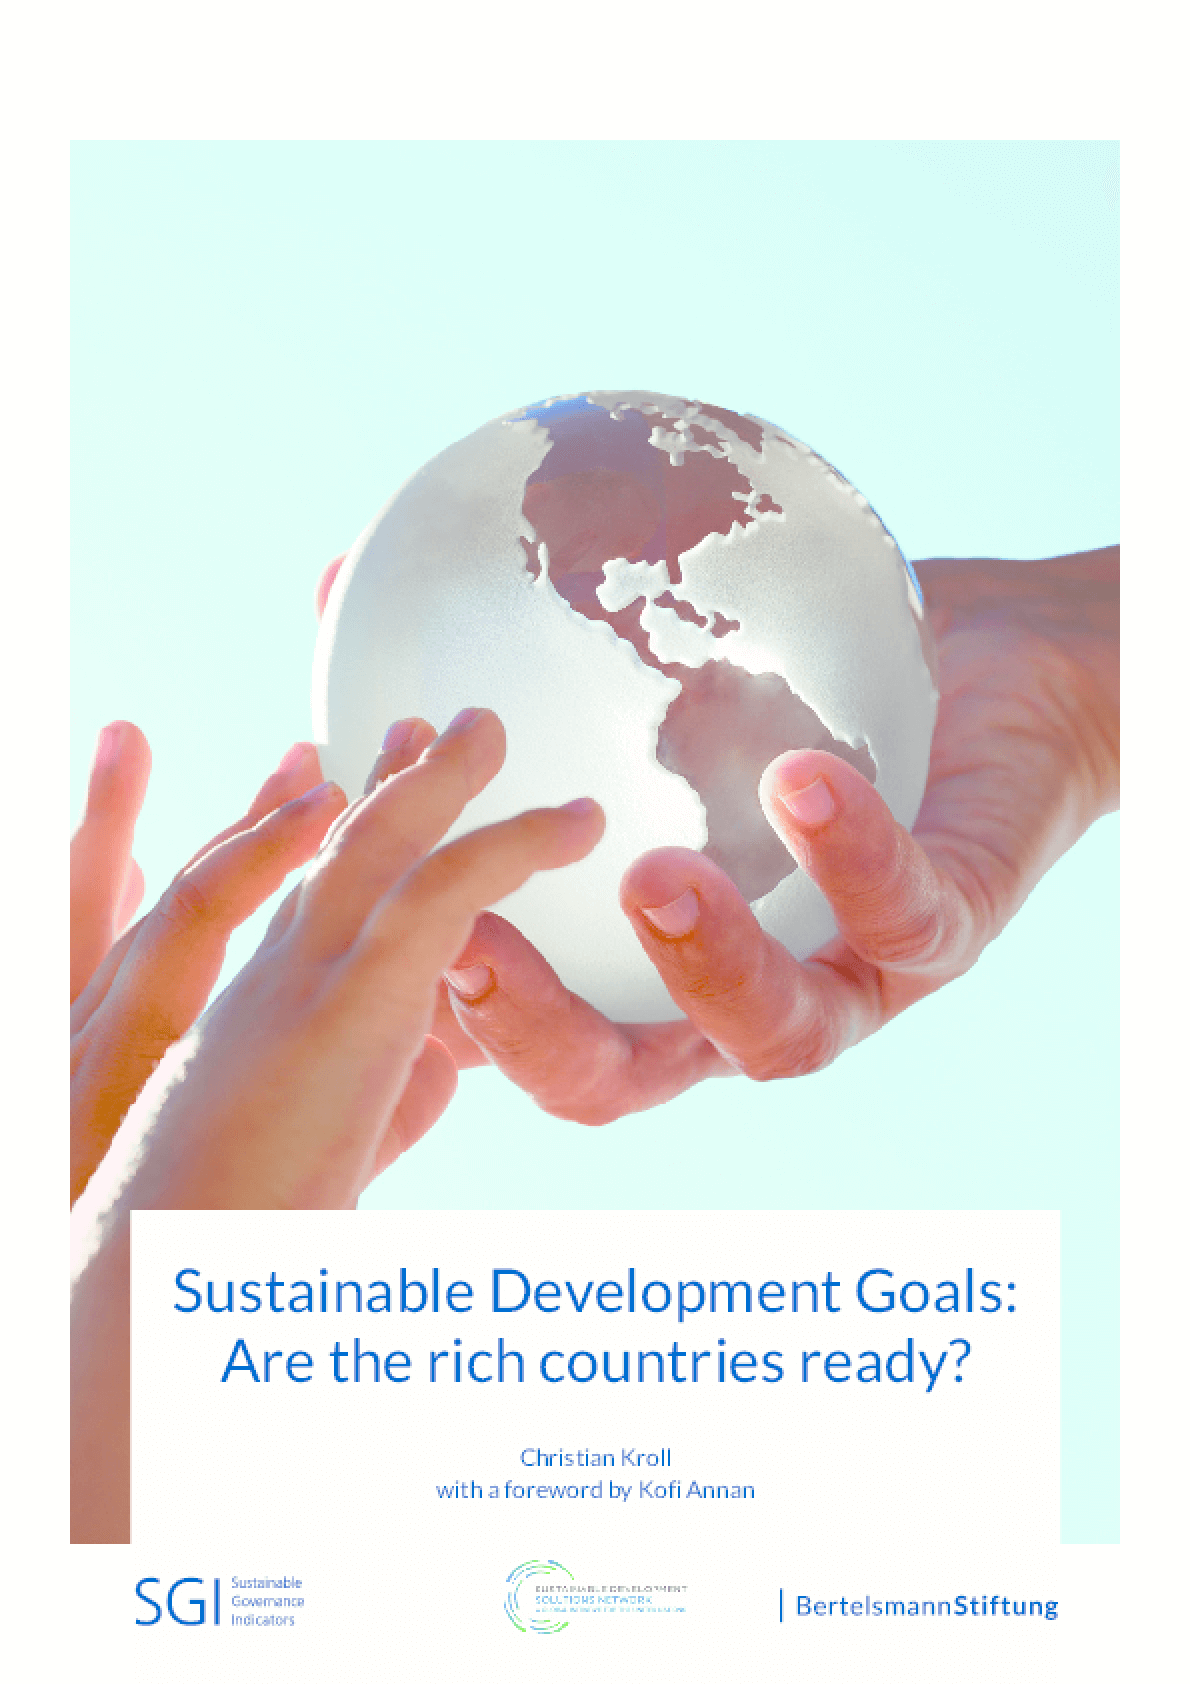 Sustainable Development Goals: Are the Rich Countries Ready?